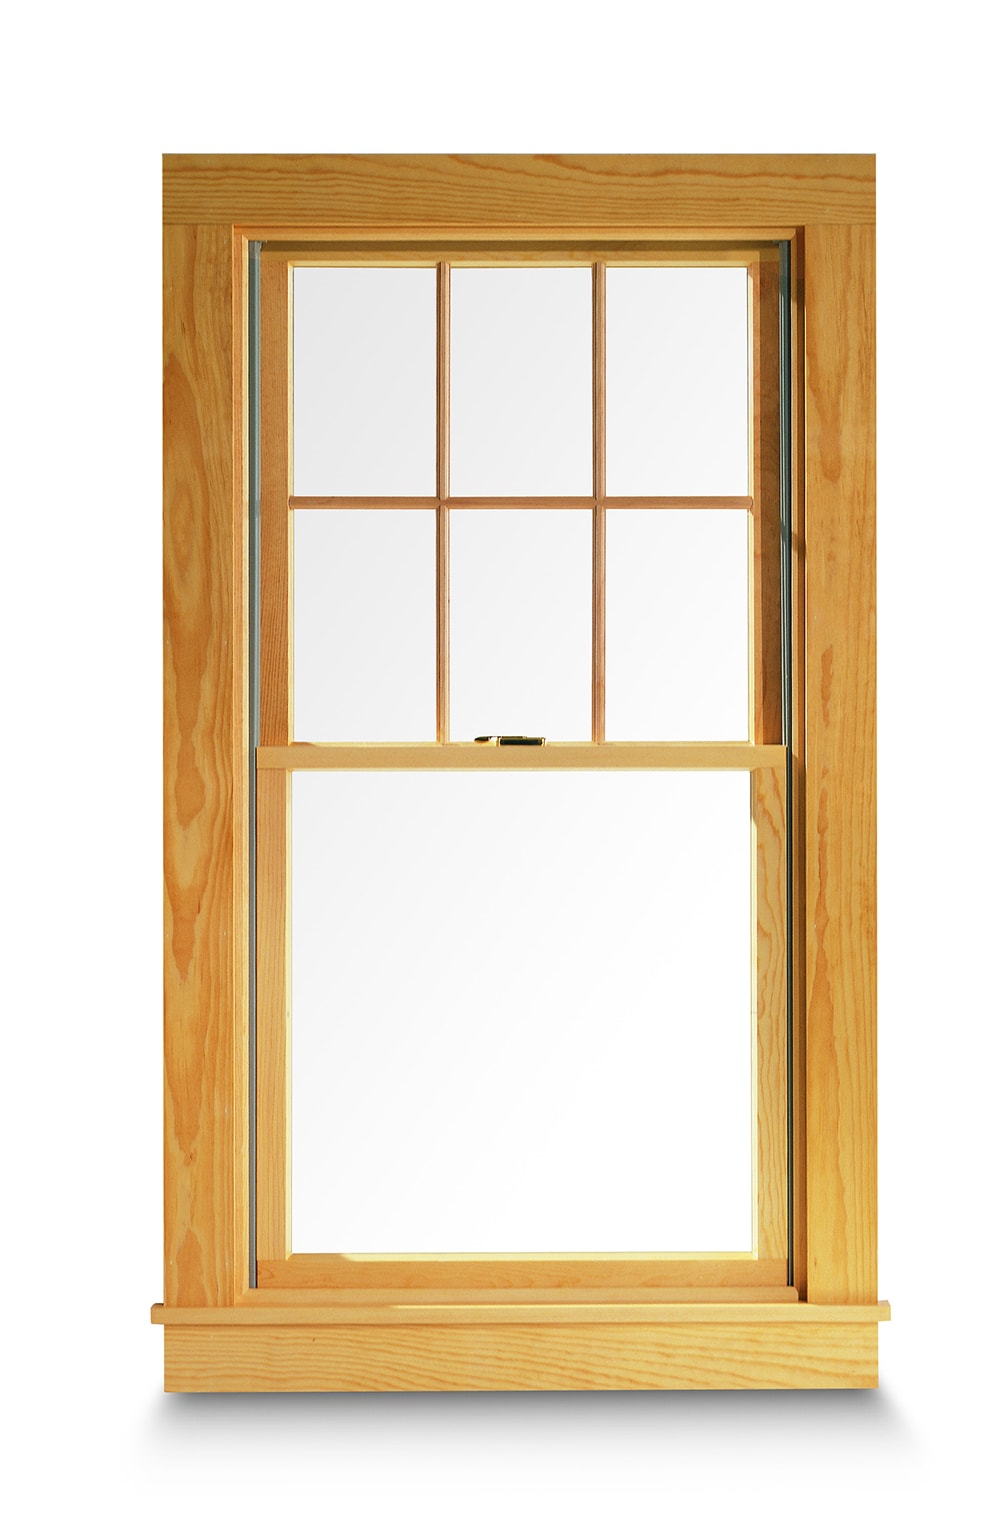 Andersen 400 s series windows mtb windows and more for Wood double hung andersen 400 series